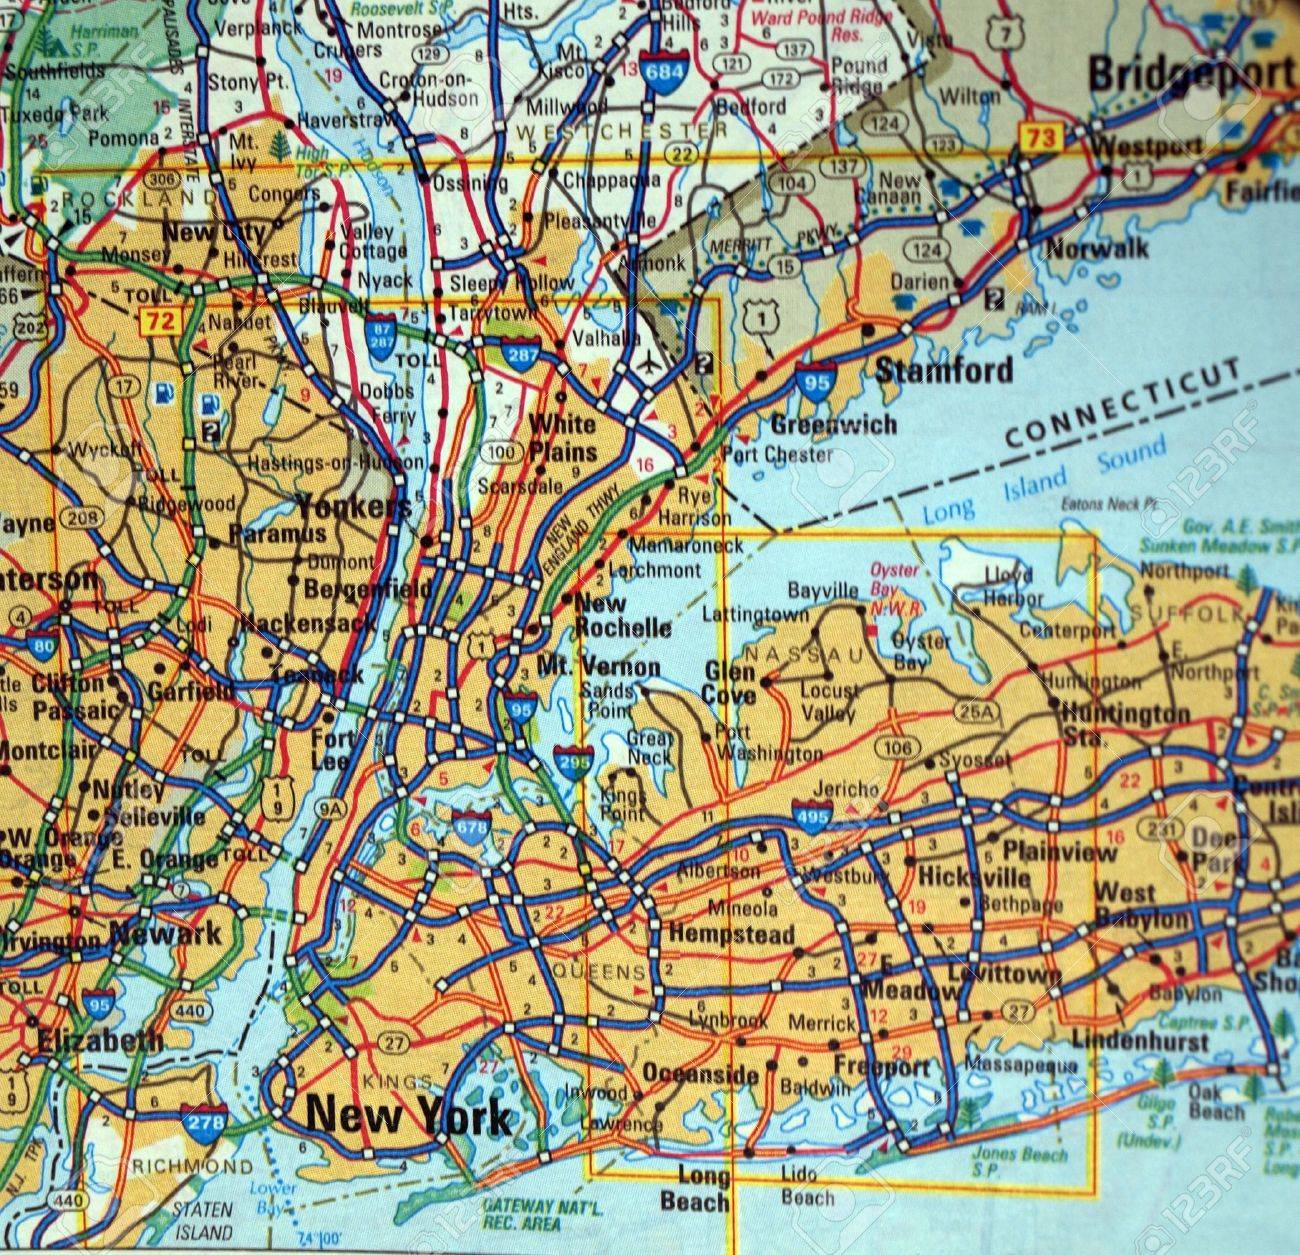 Highway Map Of New York You Can See A Map Of Many Places On The - New york map highways